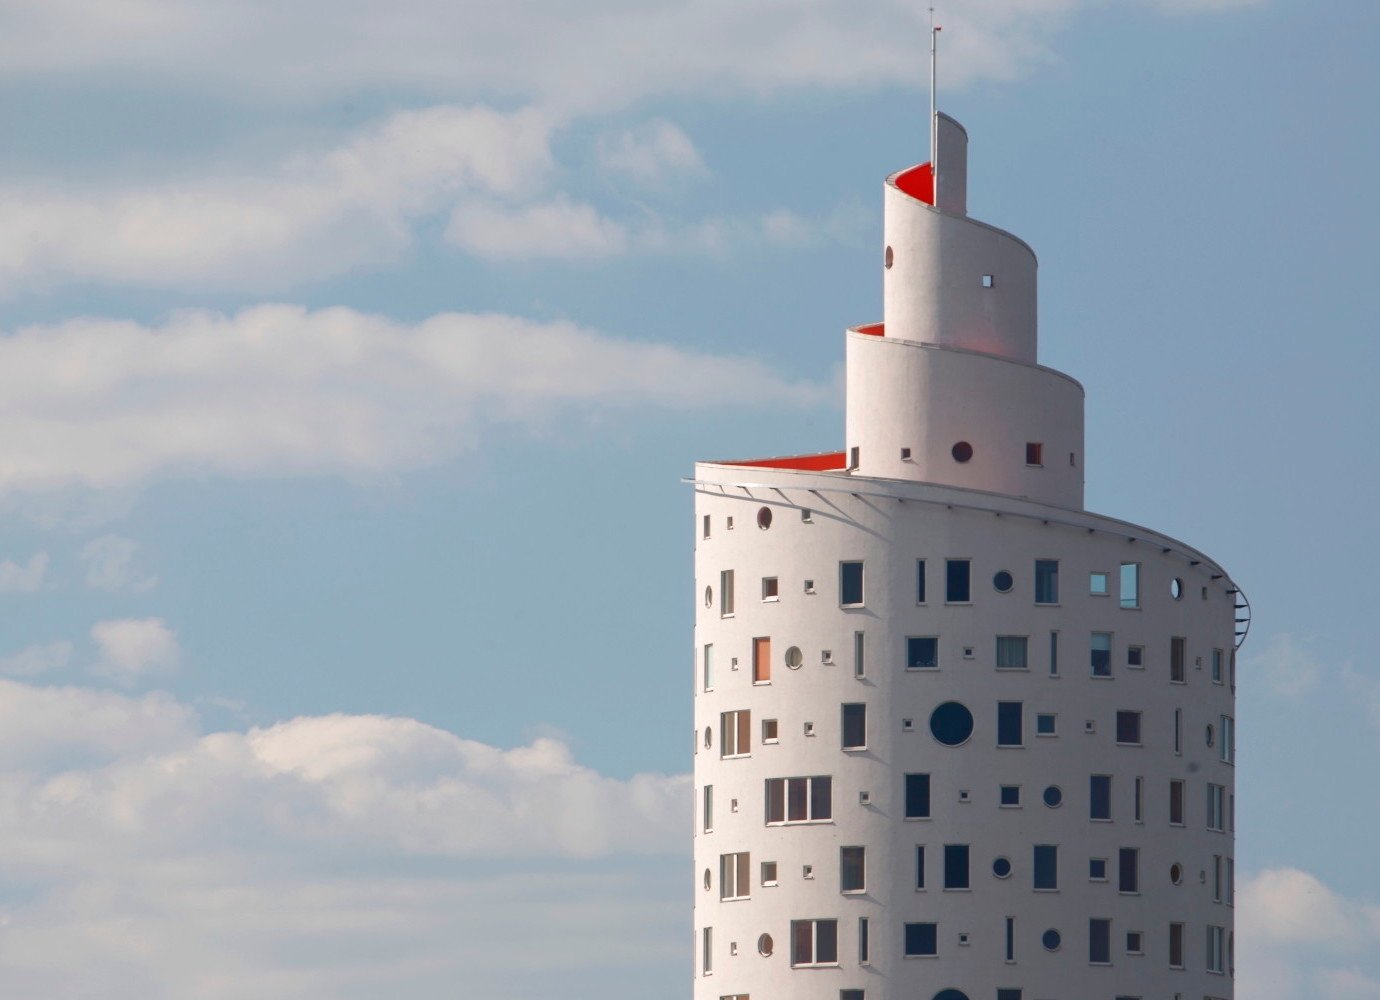 Tartu's Snail Tower is a spiral-shaped postmodern tribute to eternity | Concrete Ideas